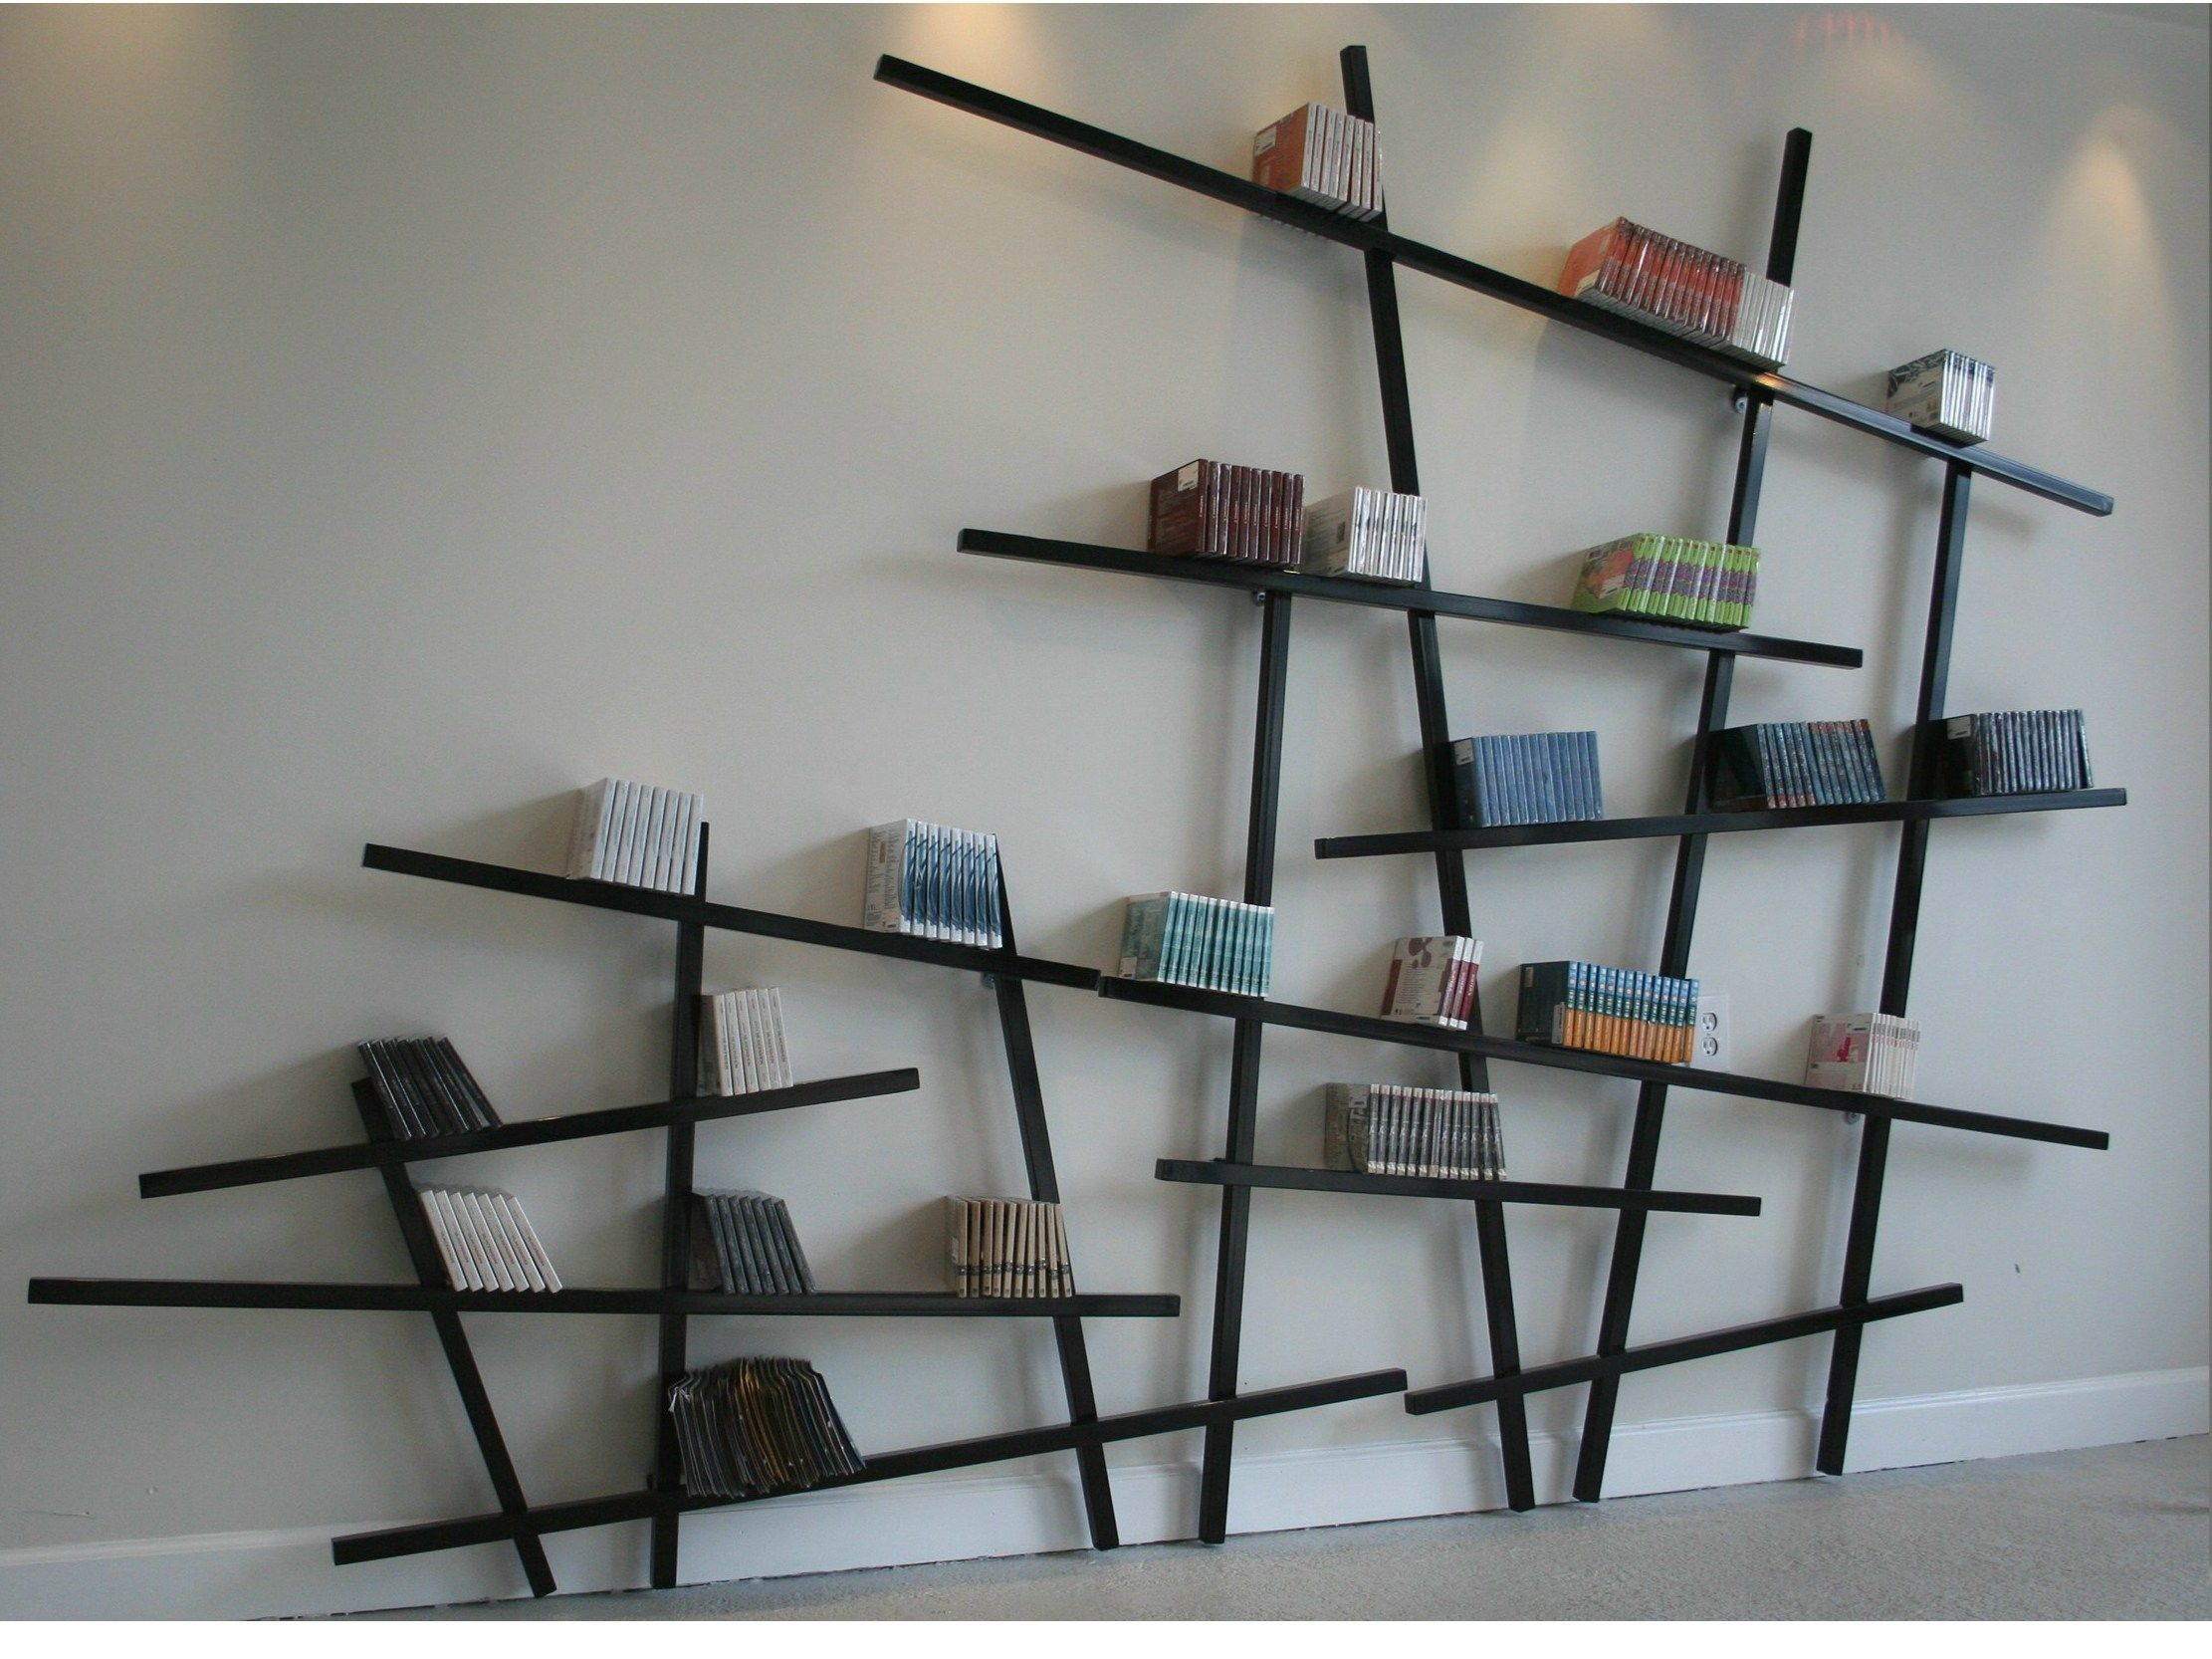 mikado librerie pinterest tag re tag res murales e parement mural. Black Bedroom Furniture Sets. Home Design Ideas